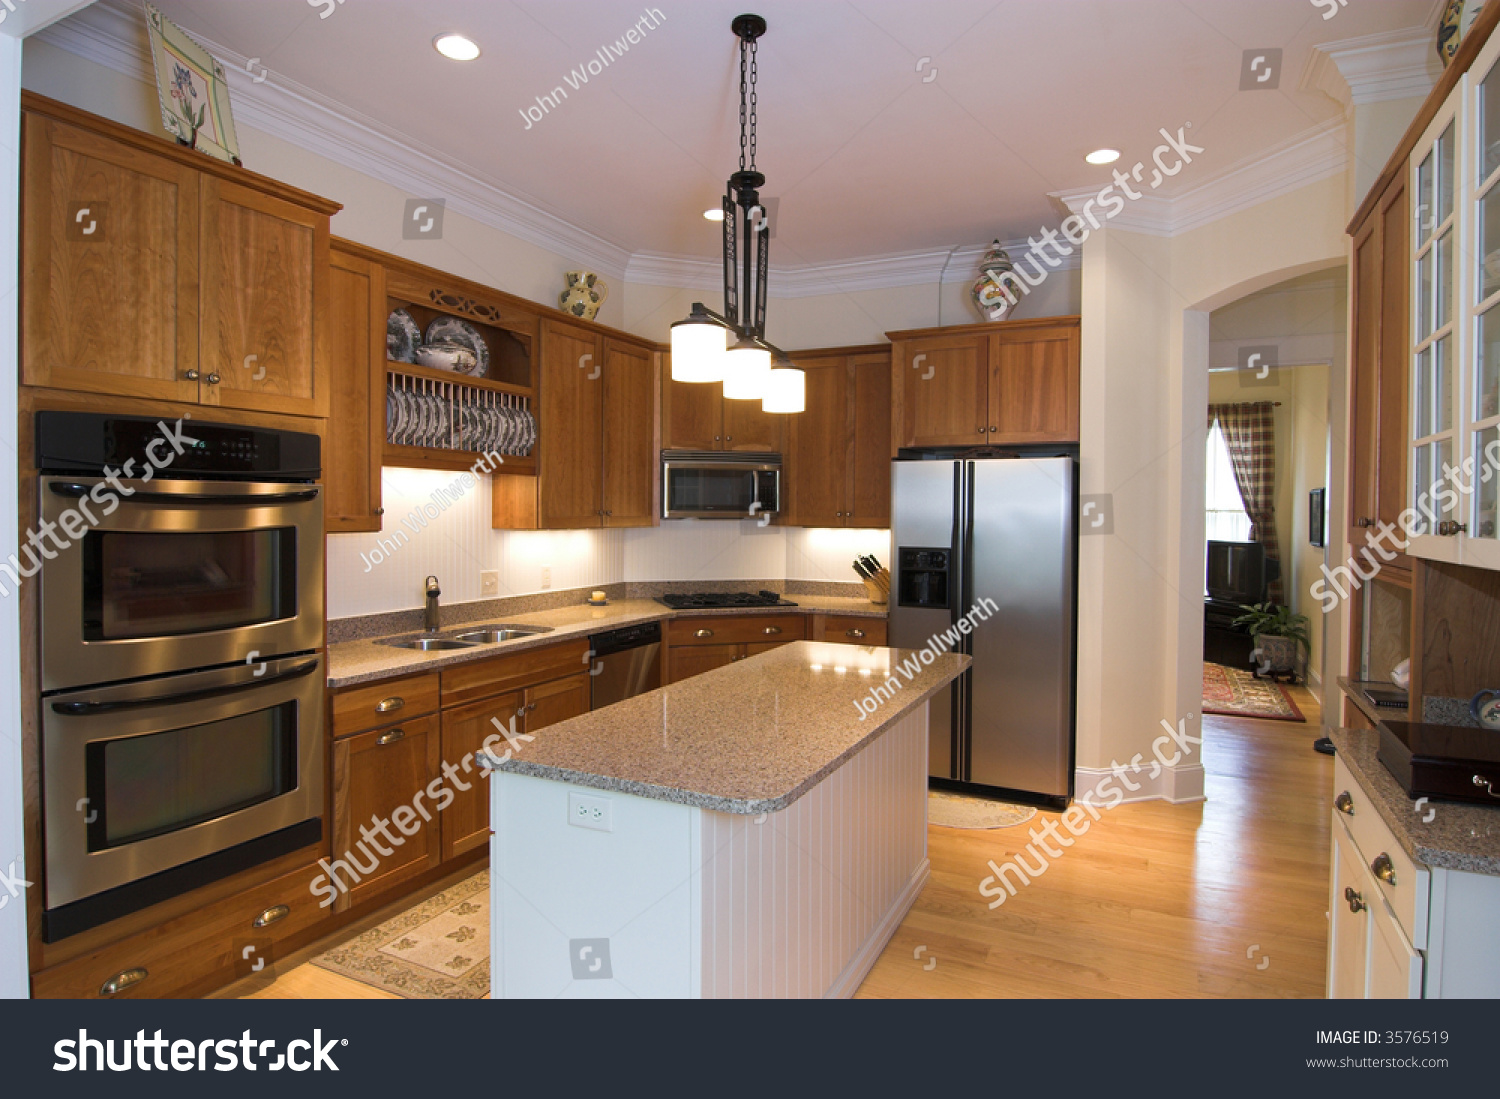 Luxurious modern kitchen with appliances stock photo 3576519 shutterstock - Luxurious kitchen appliances ...